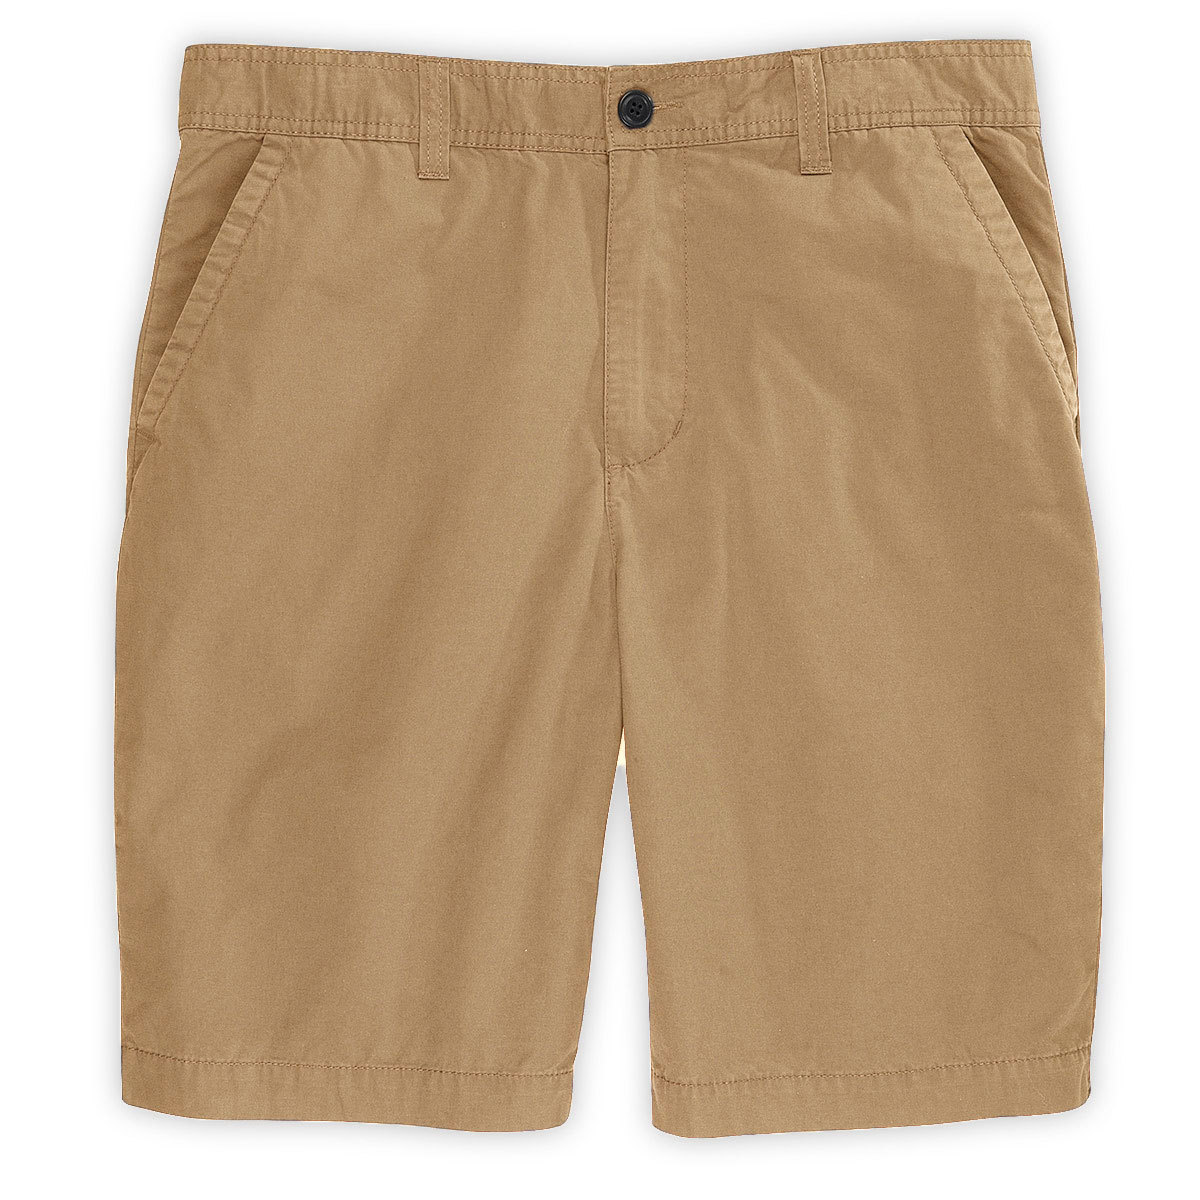 D55 Guys' Canvas Flat Front Shorts - Brown, 38